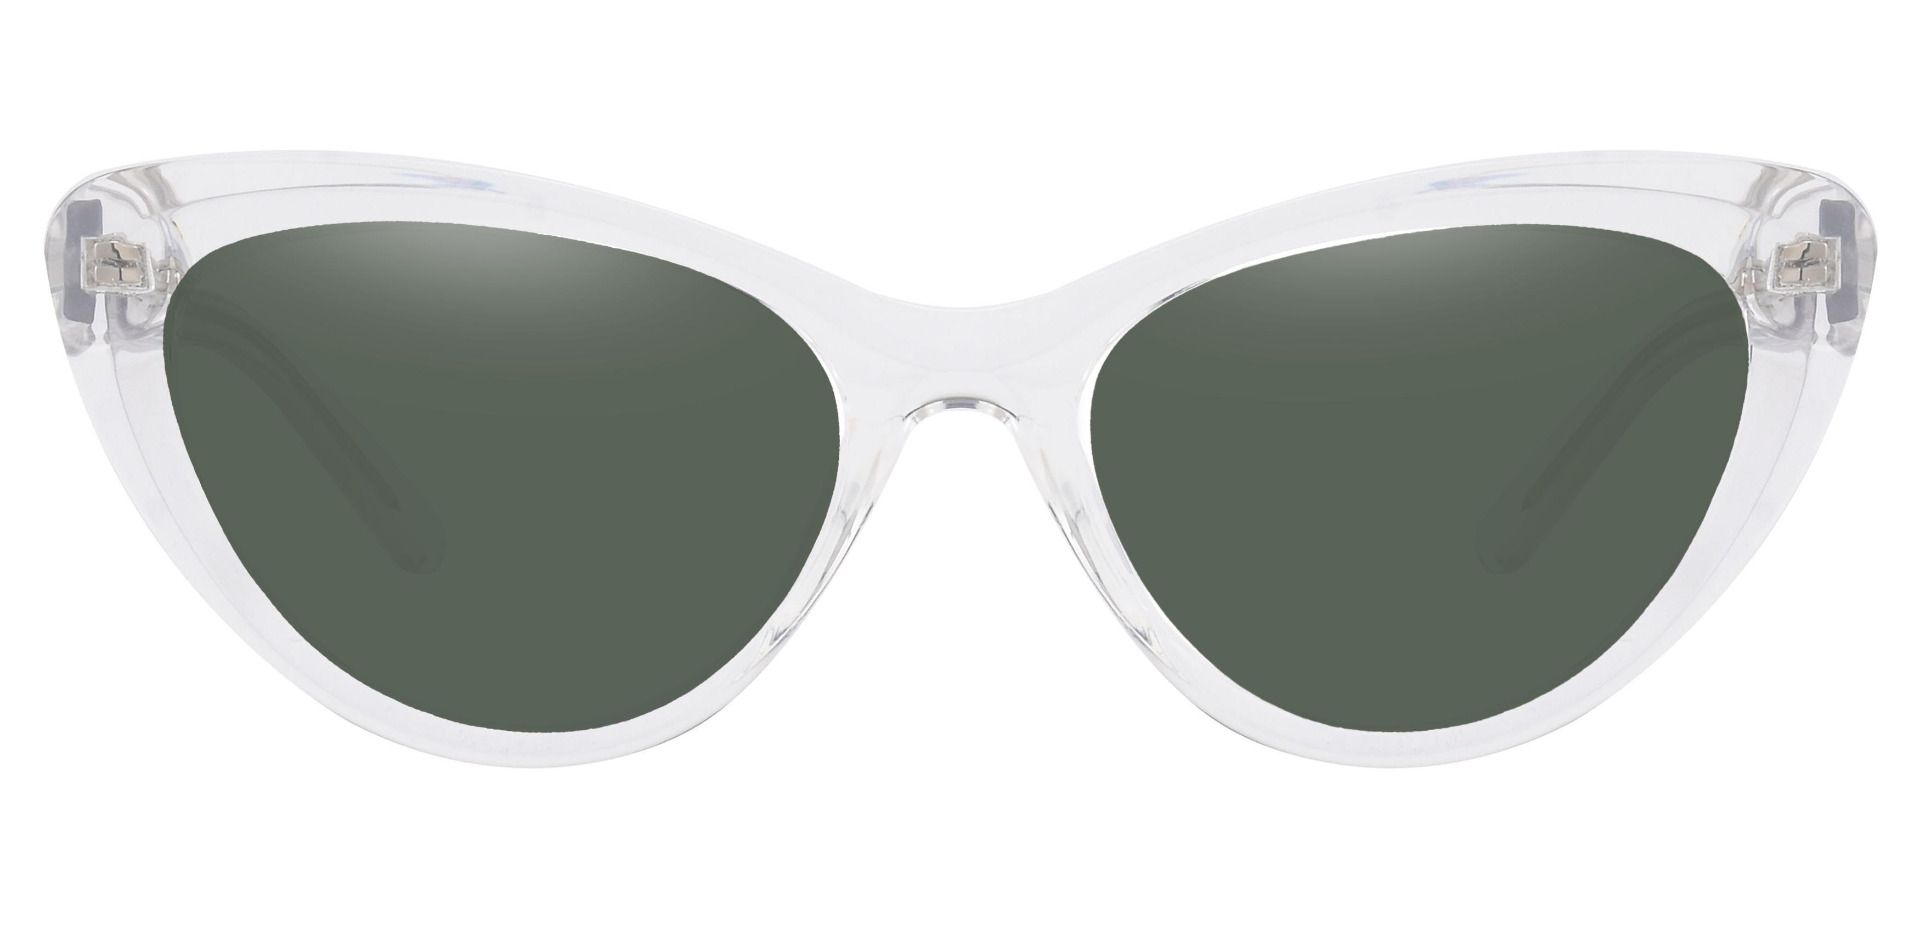 Gemini Cat Eye Lined Bifocal Sunglasses - Clear Frame With Green Lenses